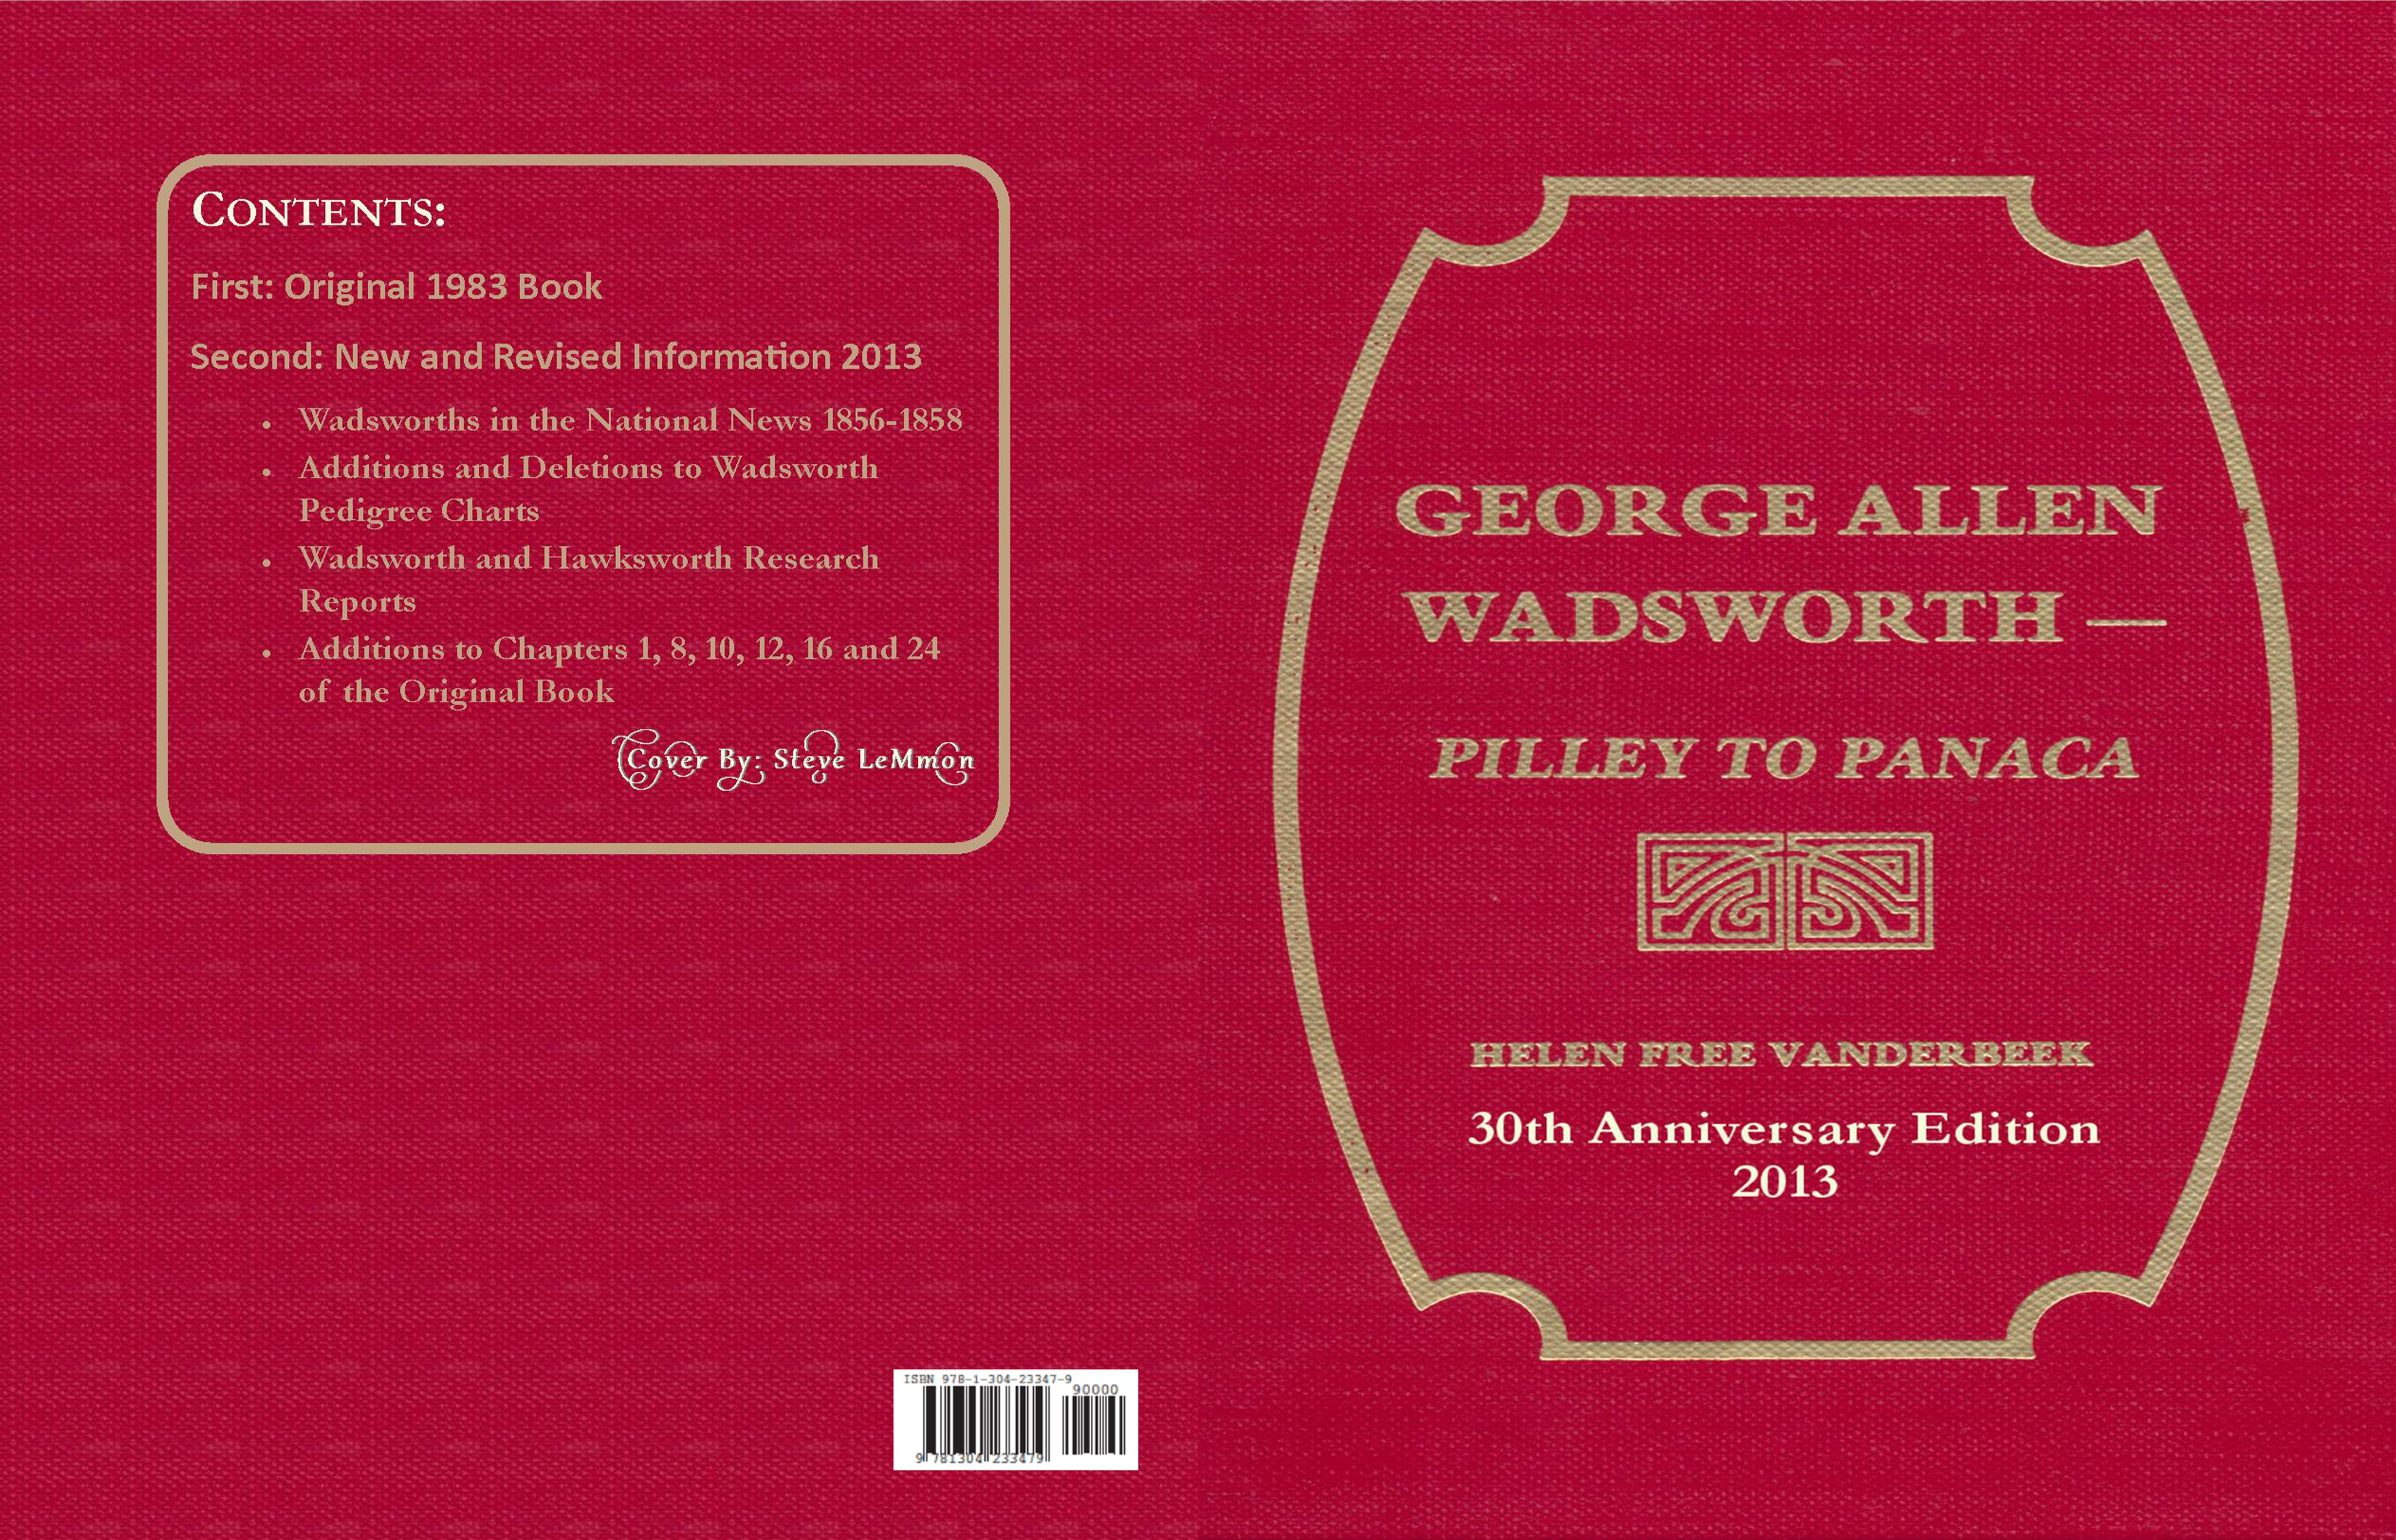 George Allen Wadsworth Pilley to Panaca cover image